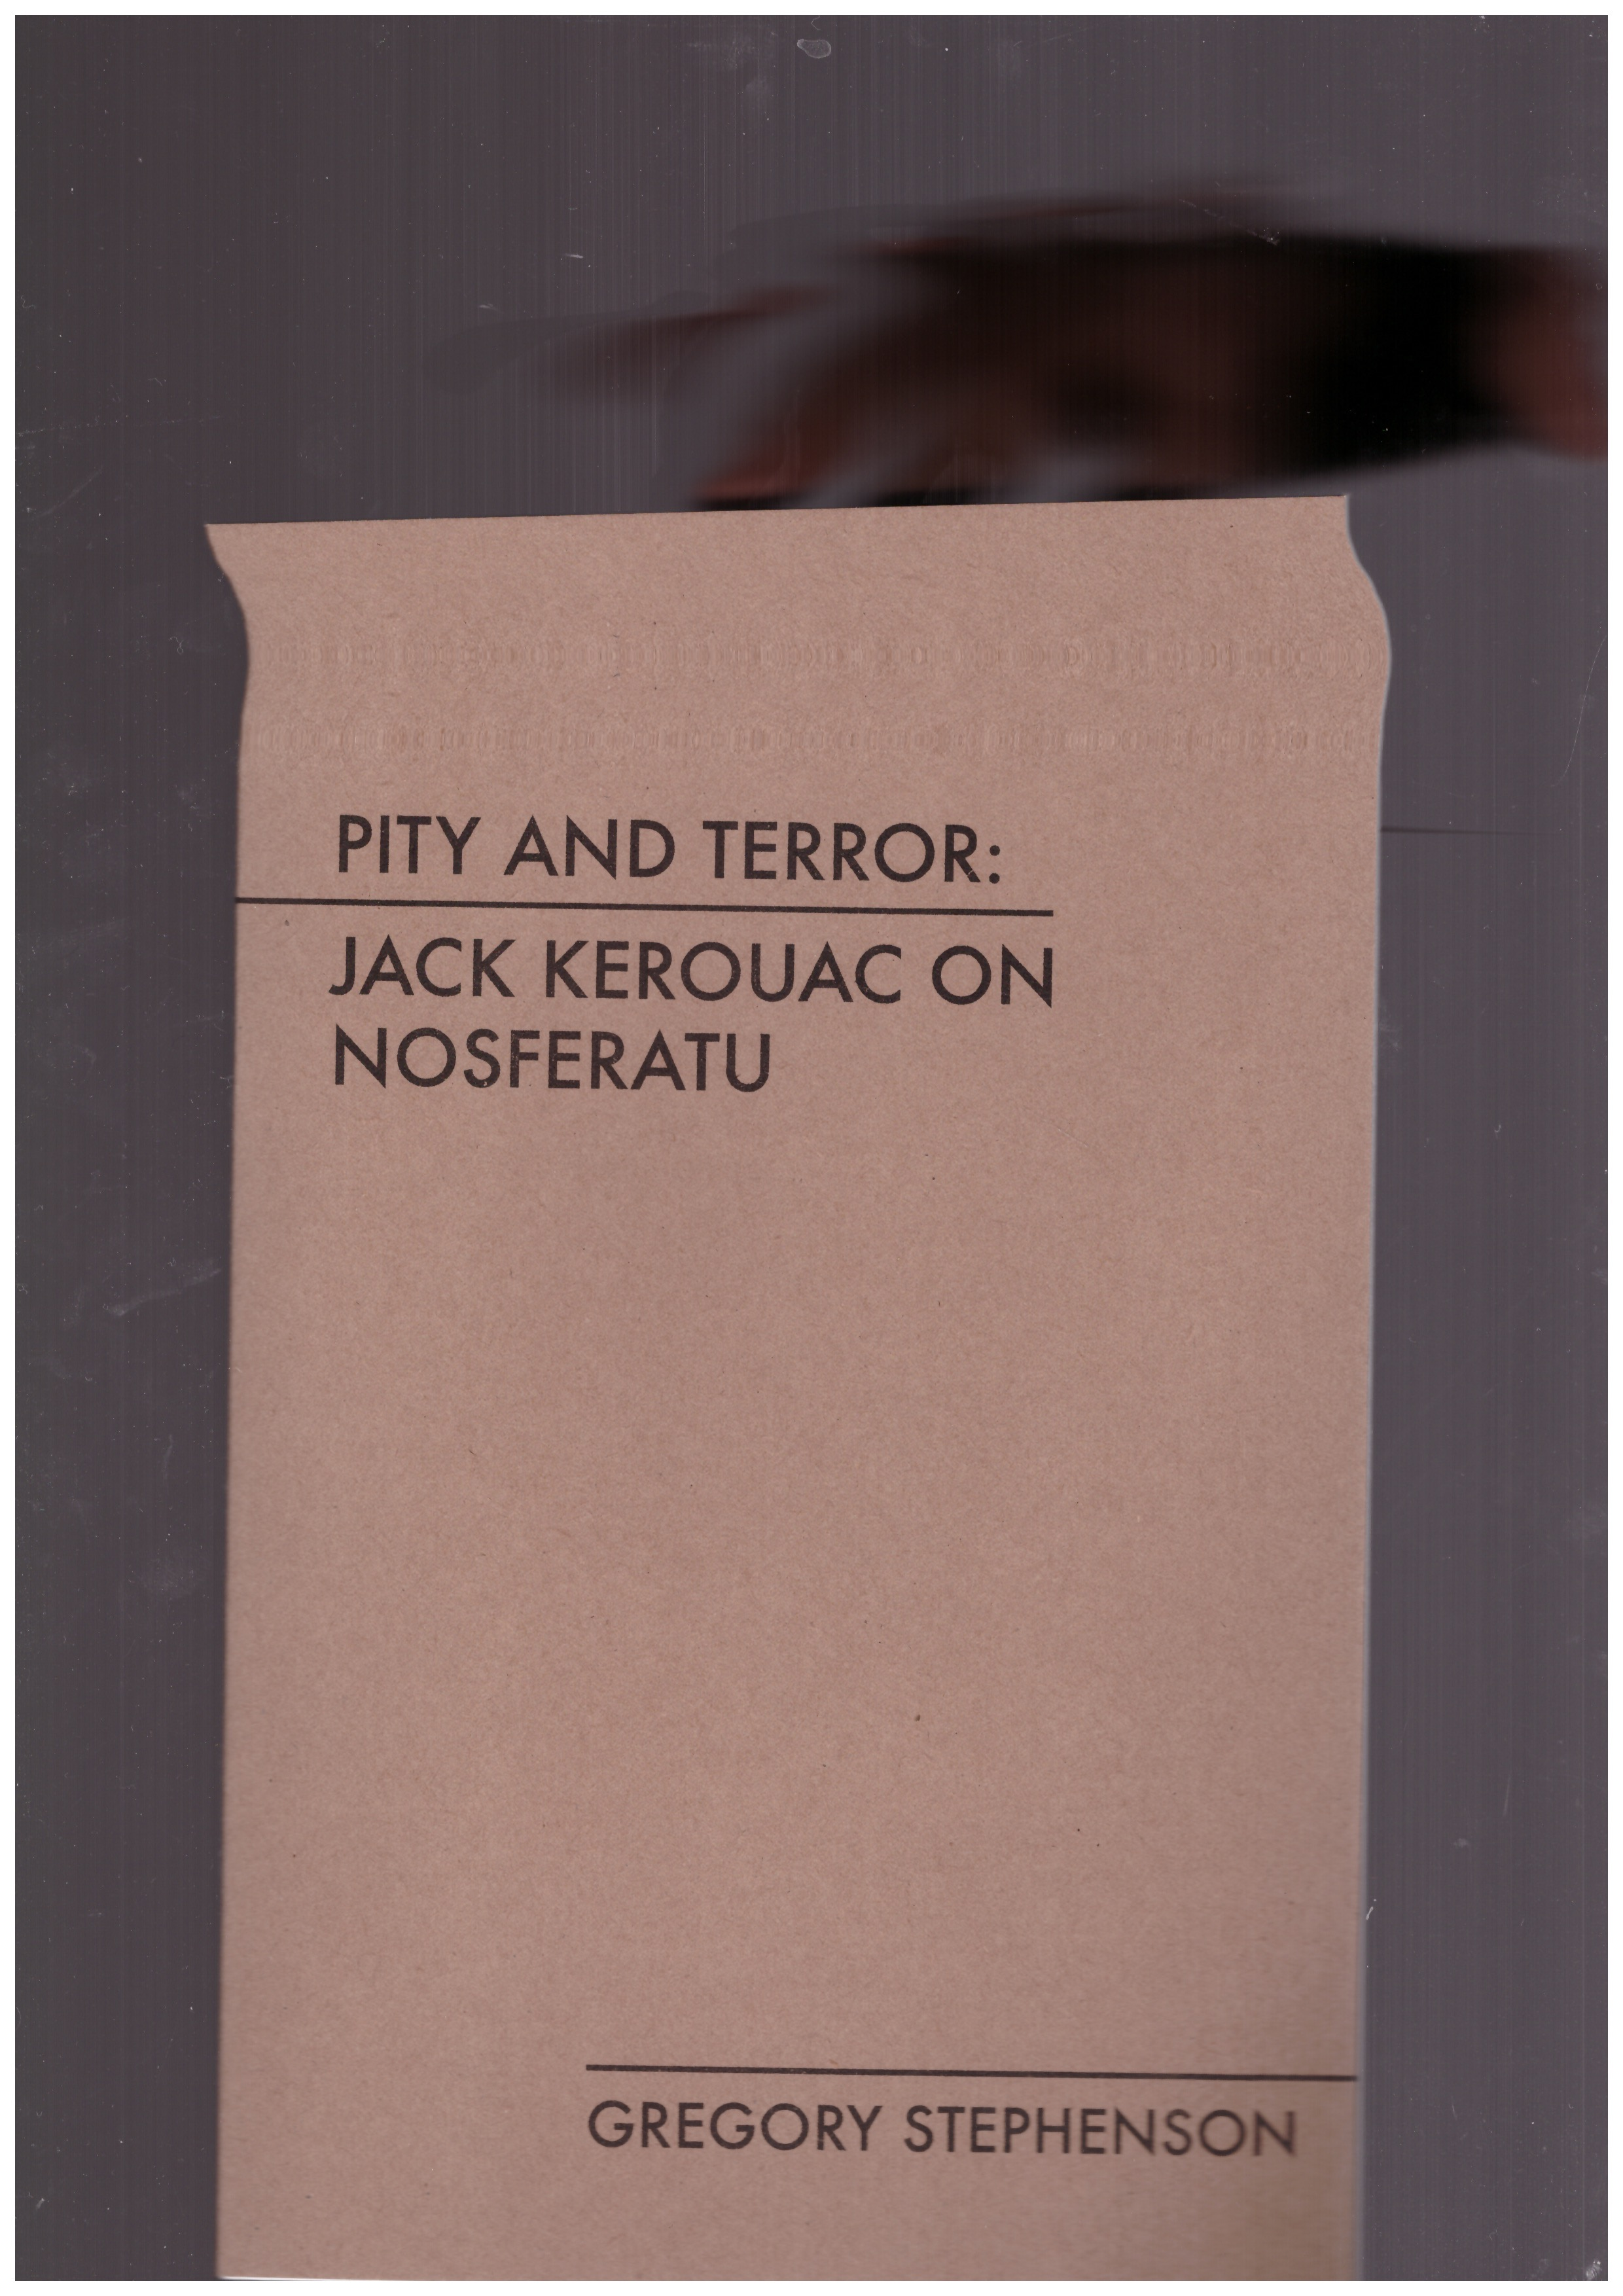 STEPHENSON, Gregory - Pity and Terror. Jack Kerouac on Nosferatu